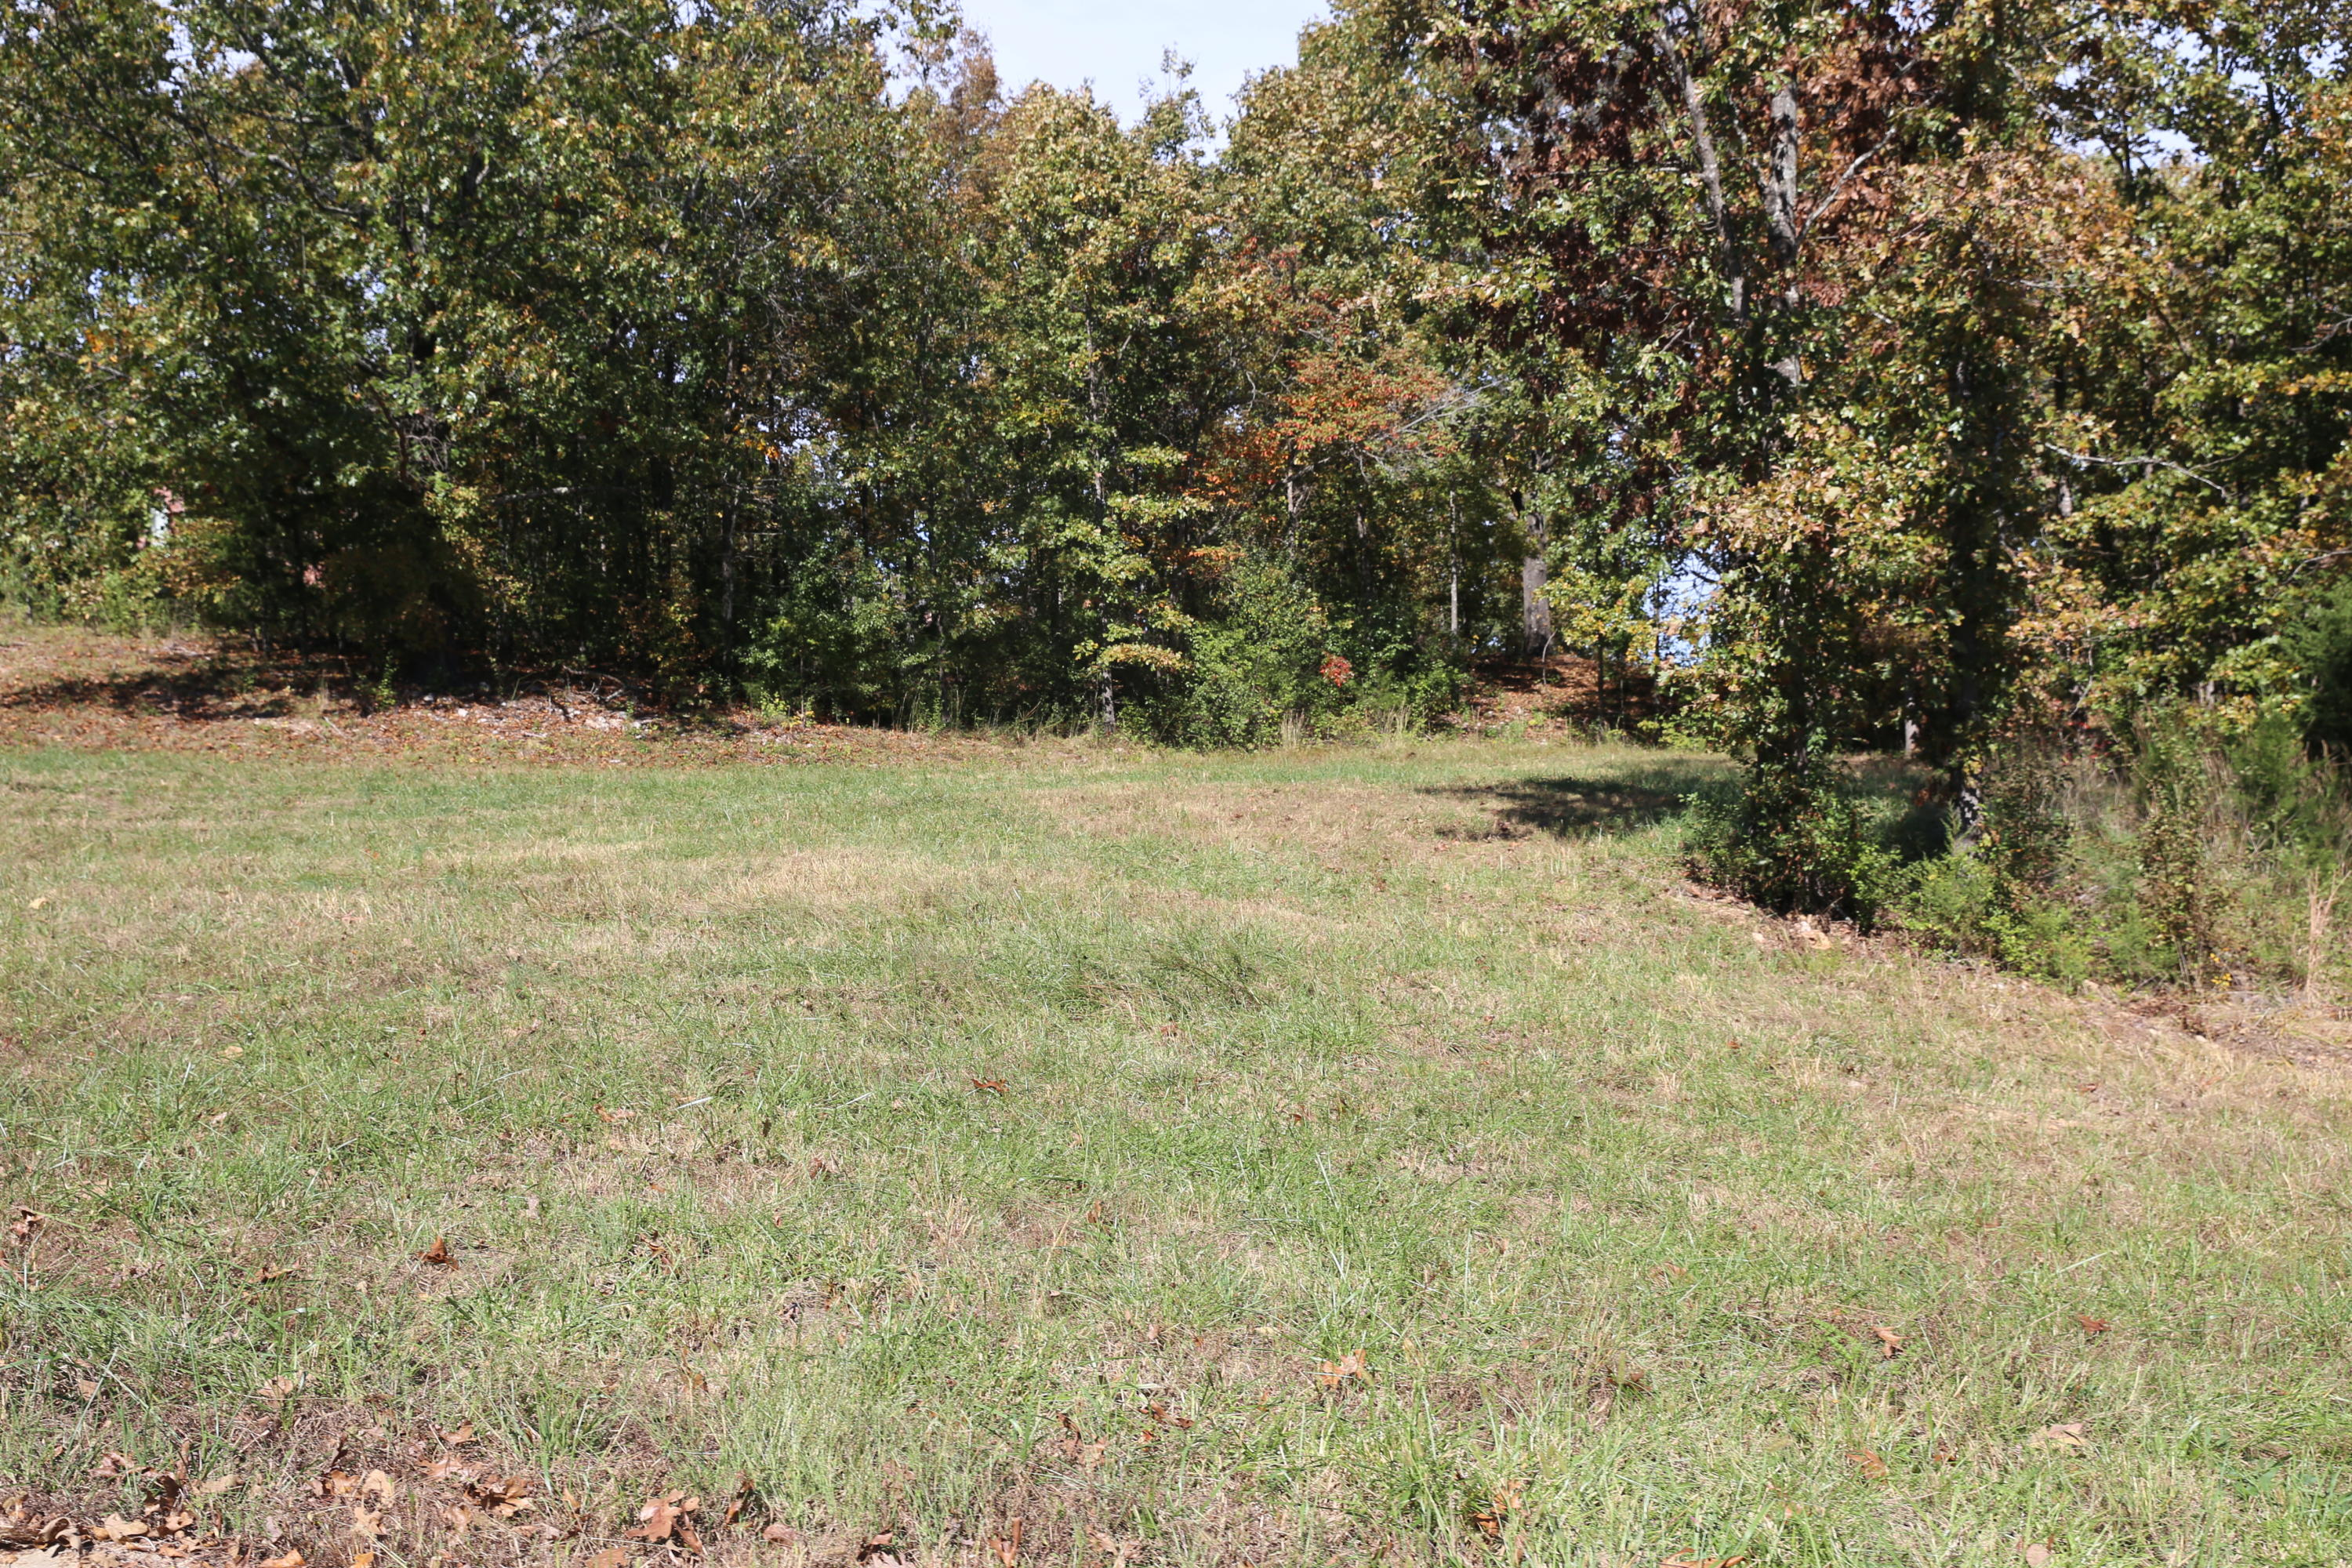 000 Wild Turkey Road Block 1 Lot 13 Property Photo